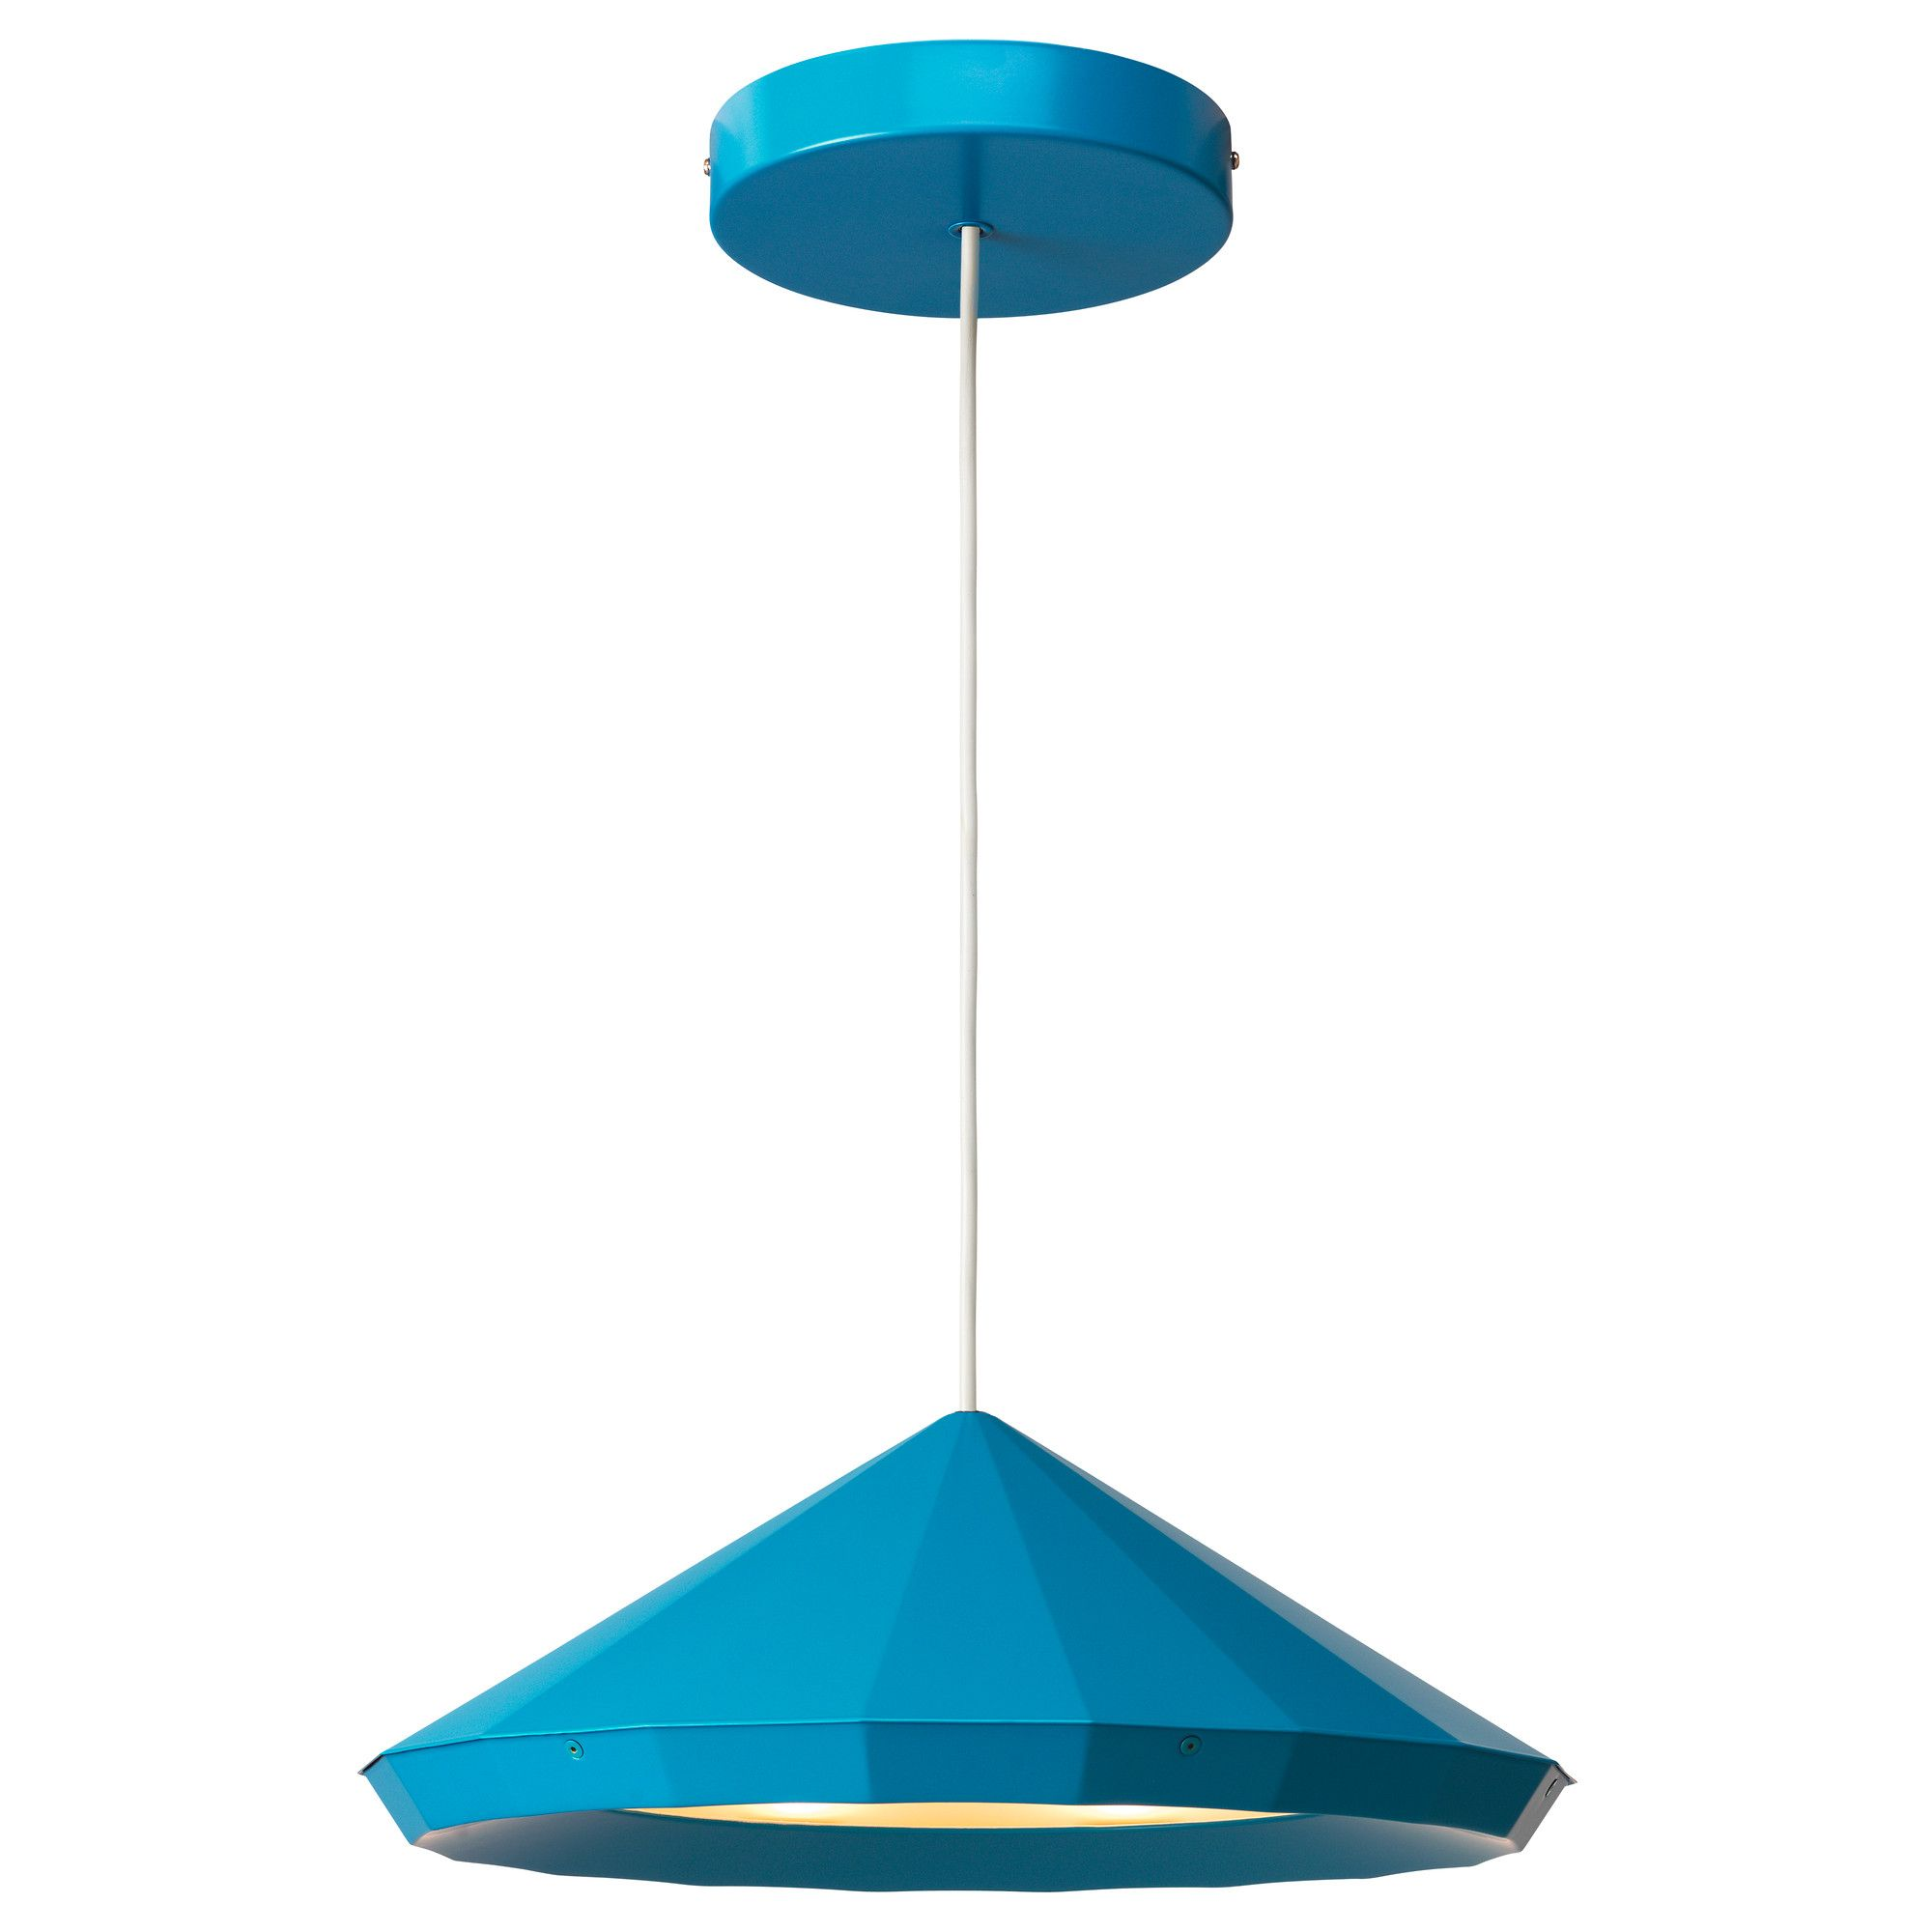 love the ikea ps range. and these pendant lamps are great. i can